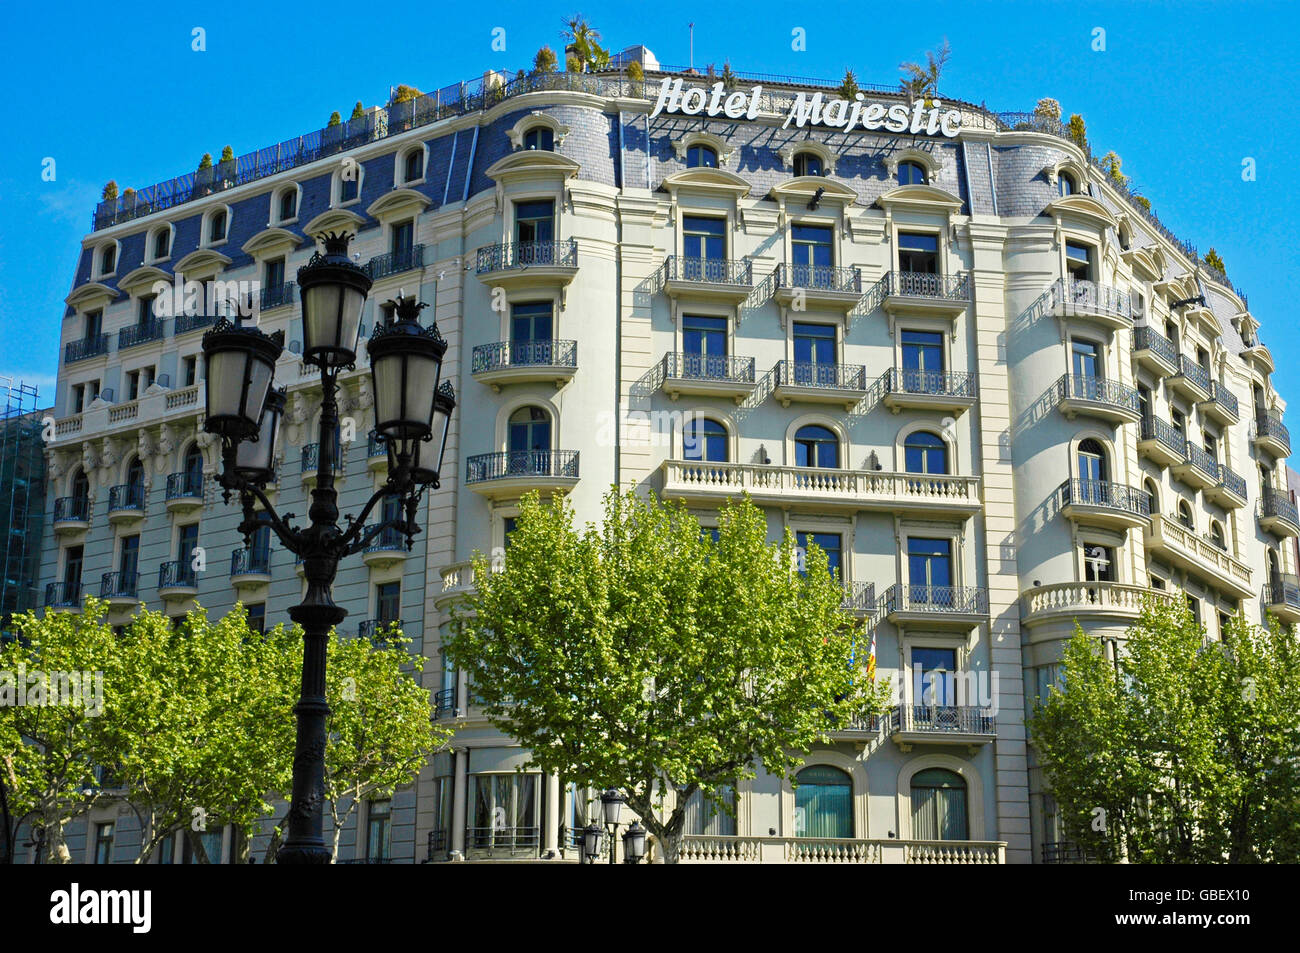 Me hotel barcelona buildings stock photos me hotel for Hotel gracia barcelona